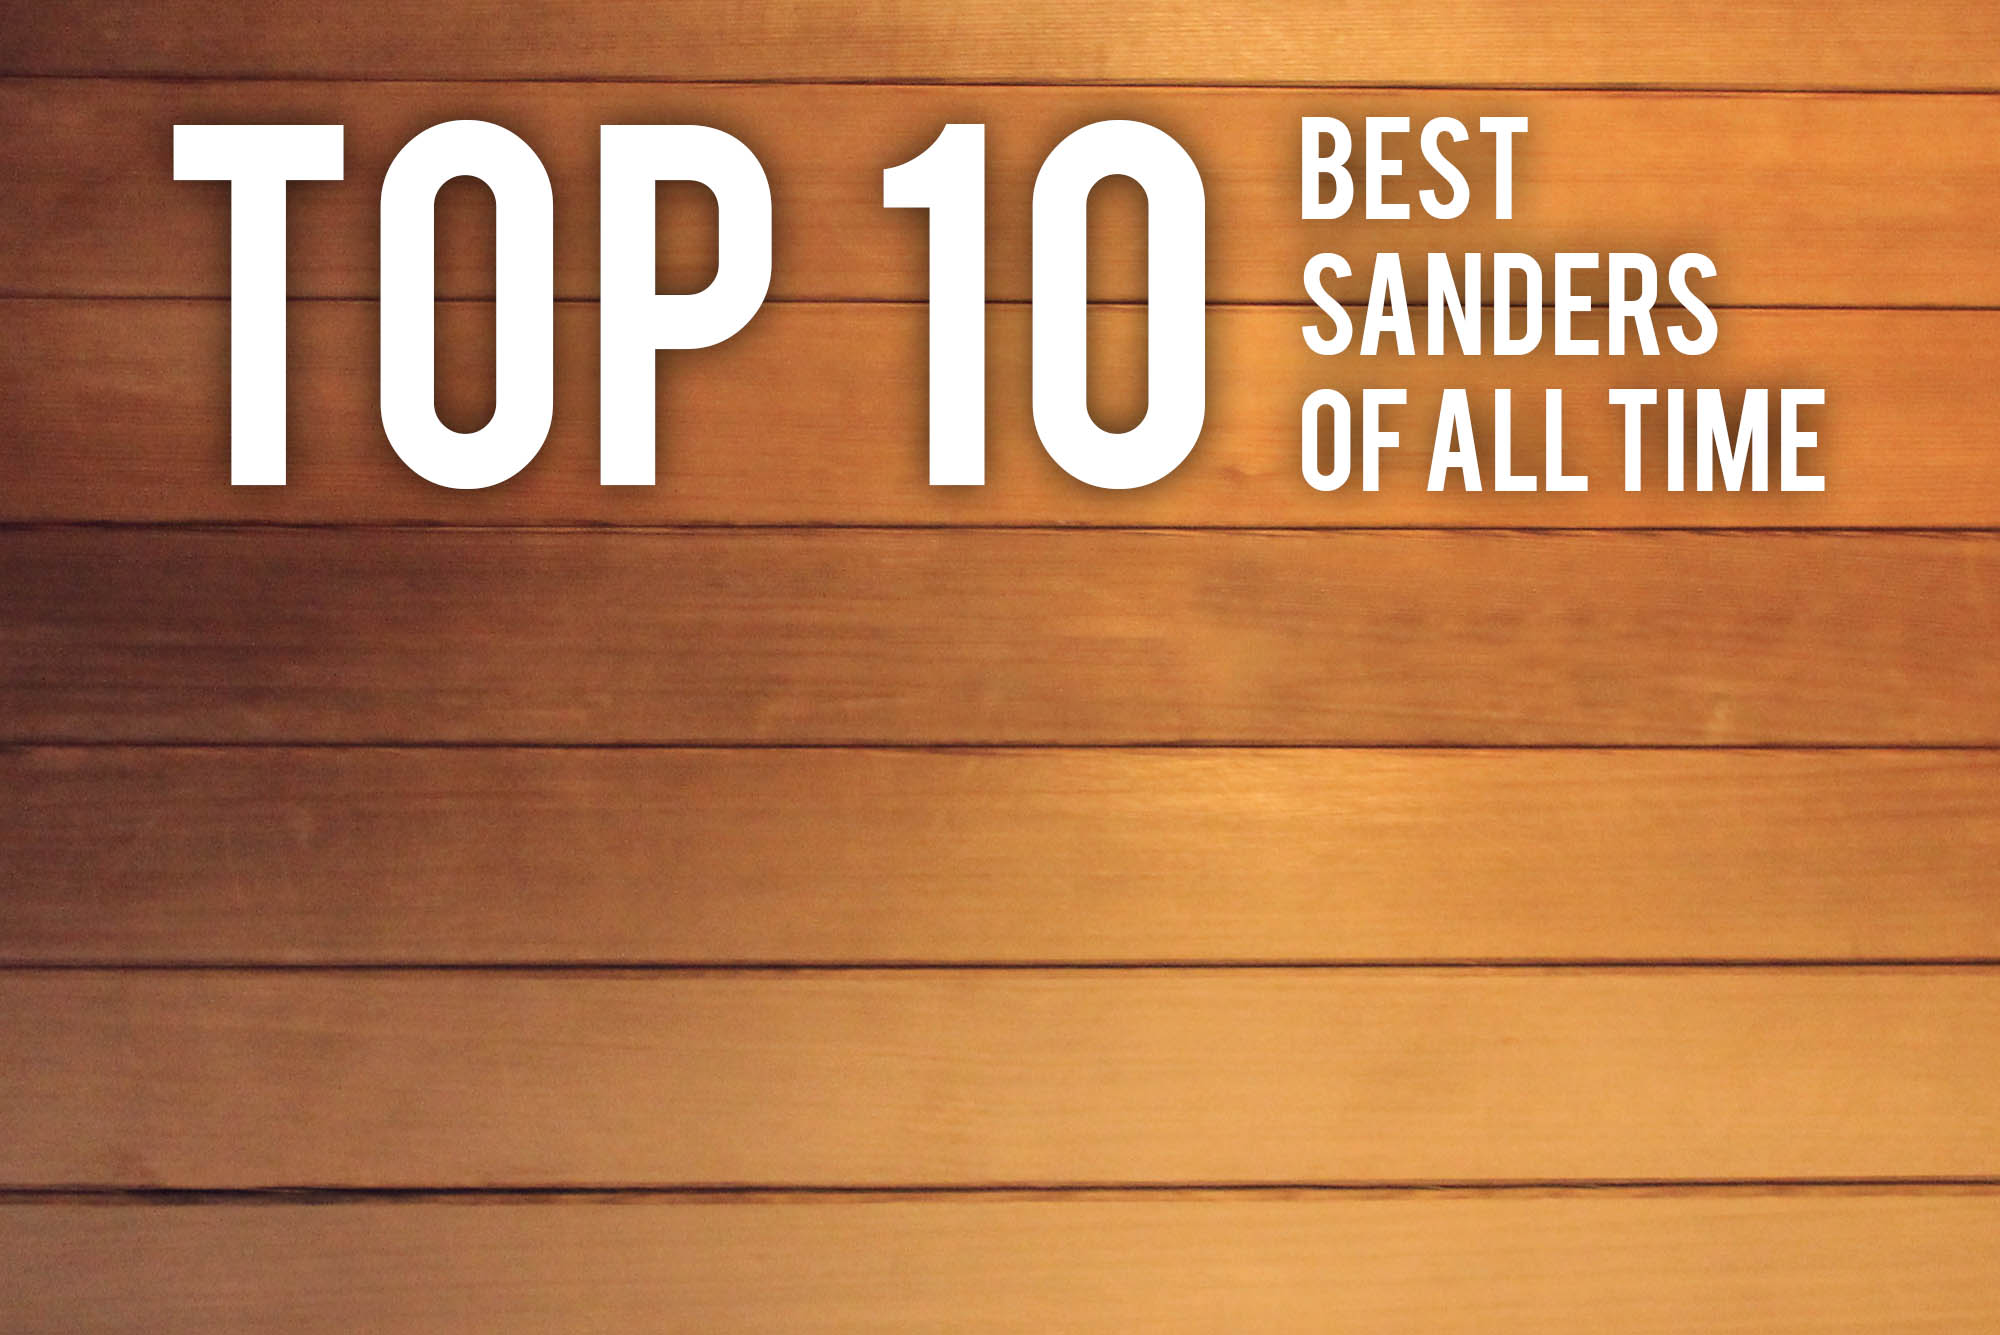 Top 10 Best Sanders of All Time - Reviewed